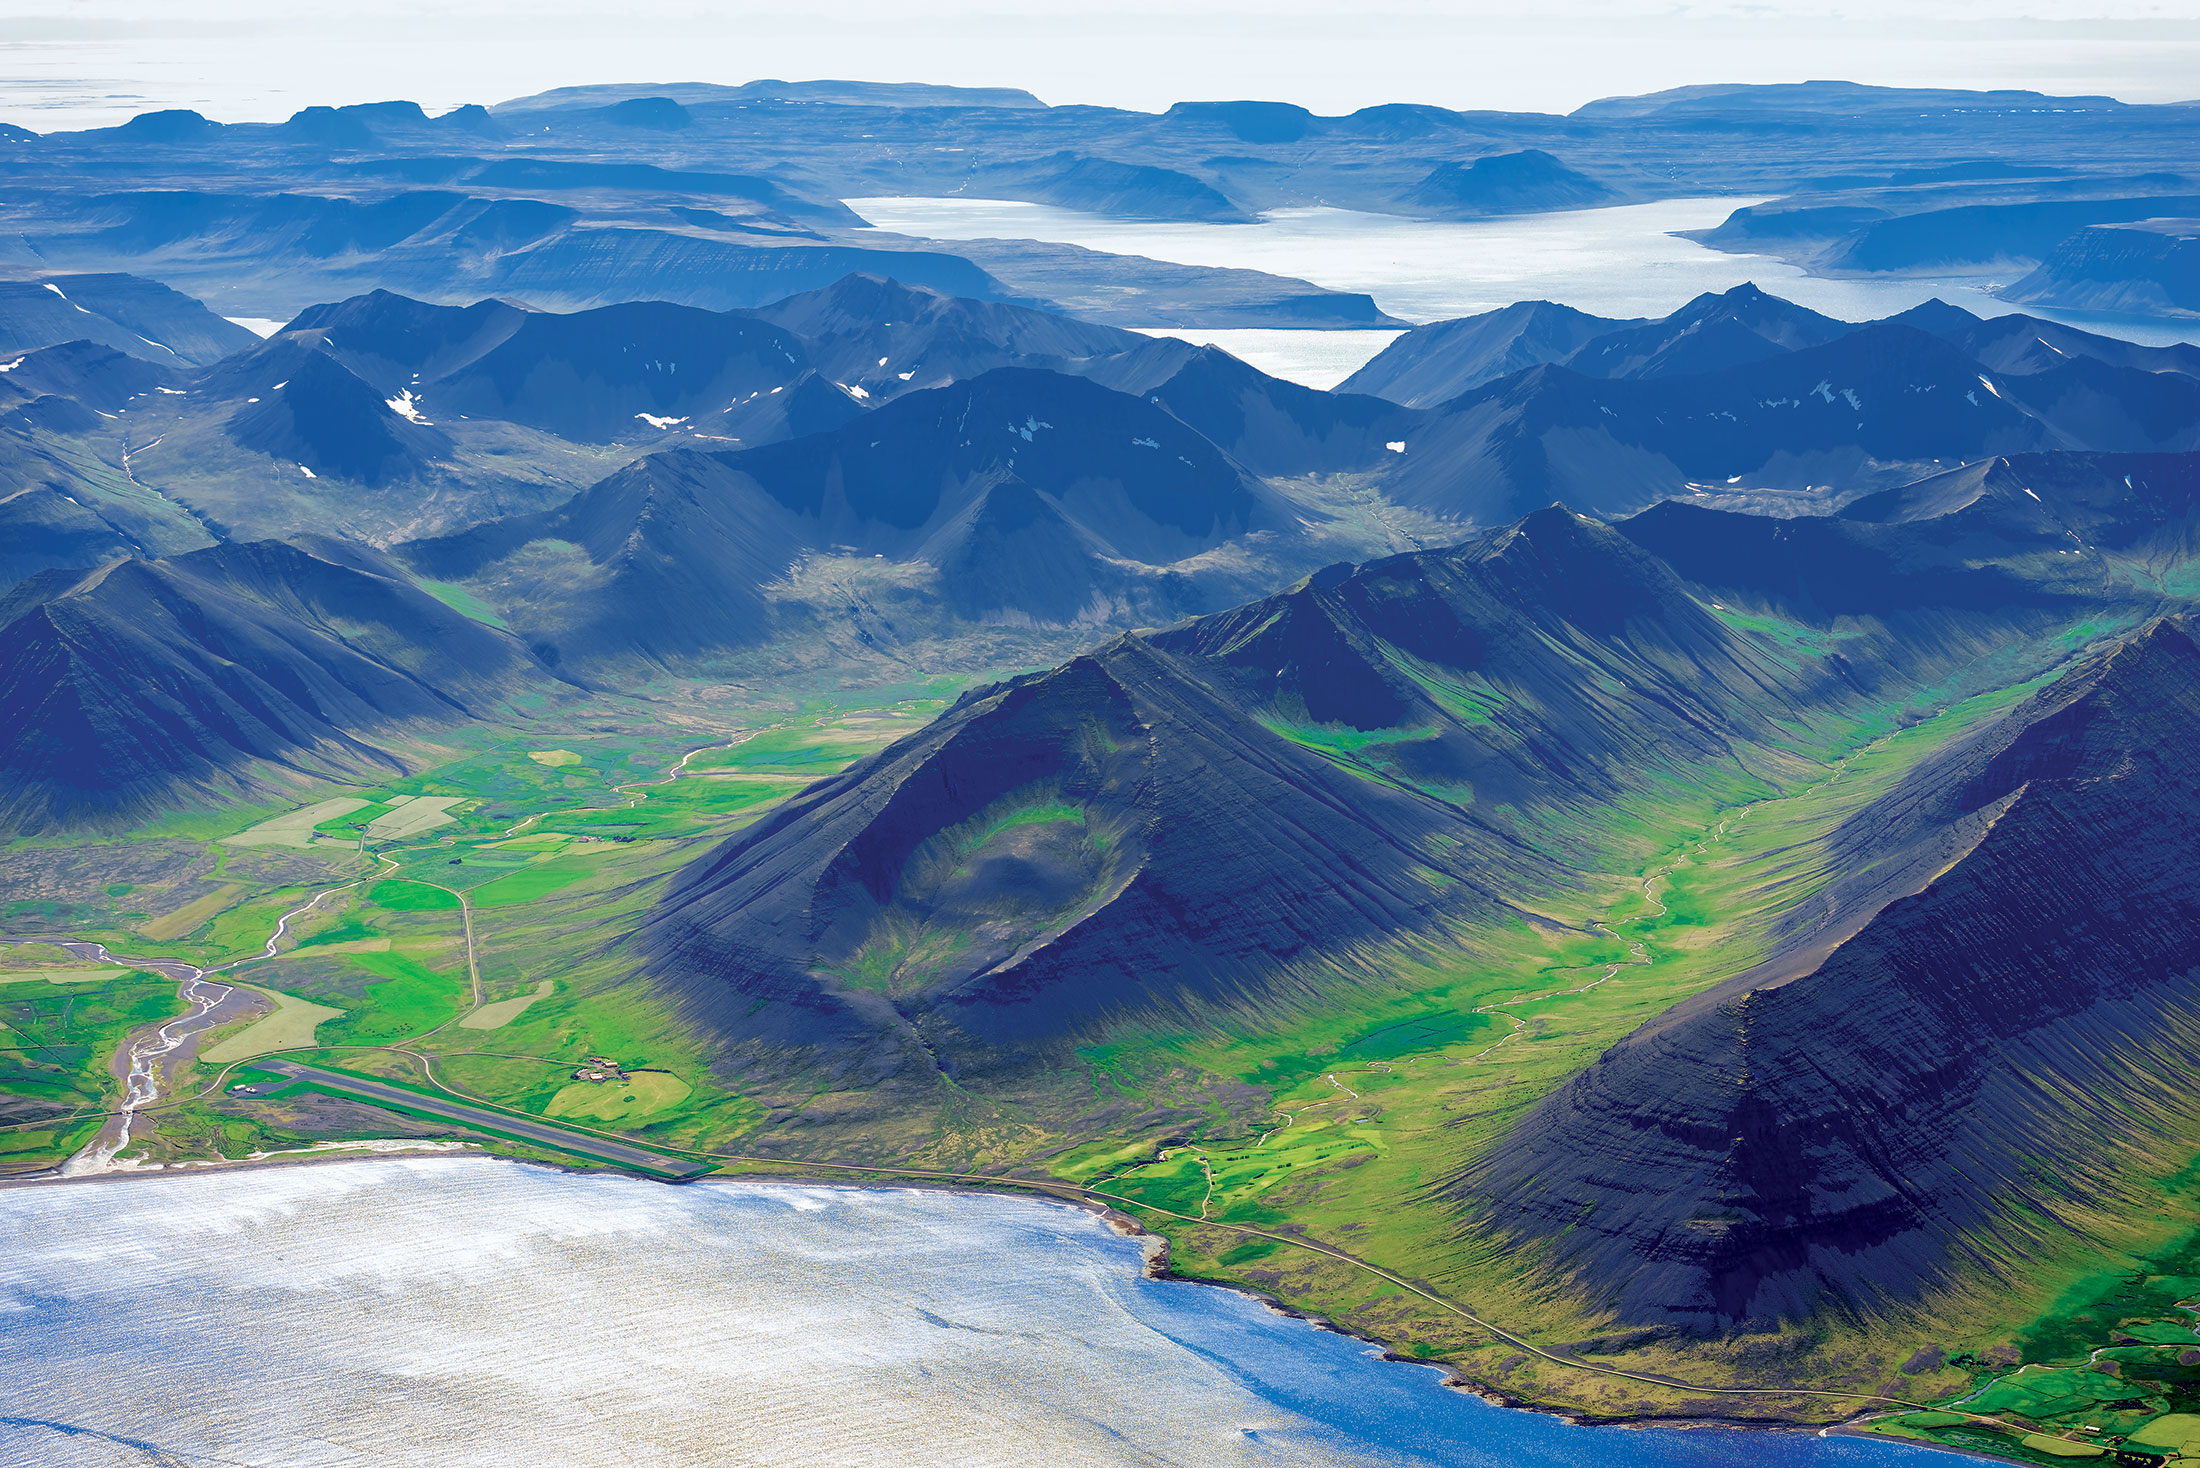 The Most Remote and Beautiful Landscape in the World Is in Westfjords, Iceland